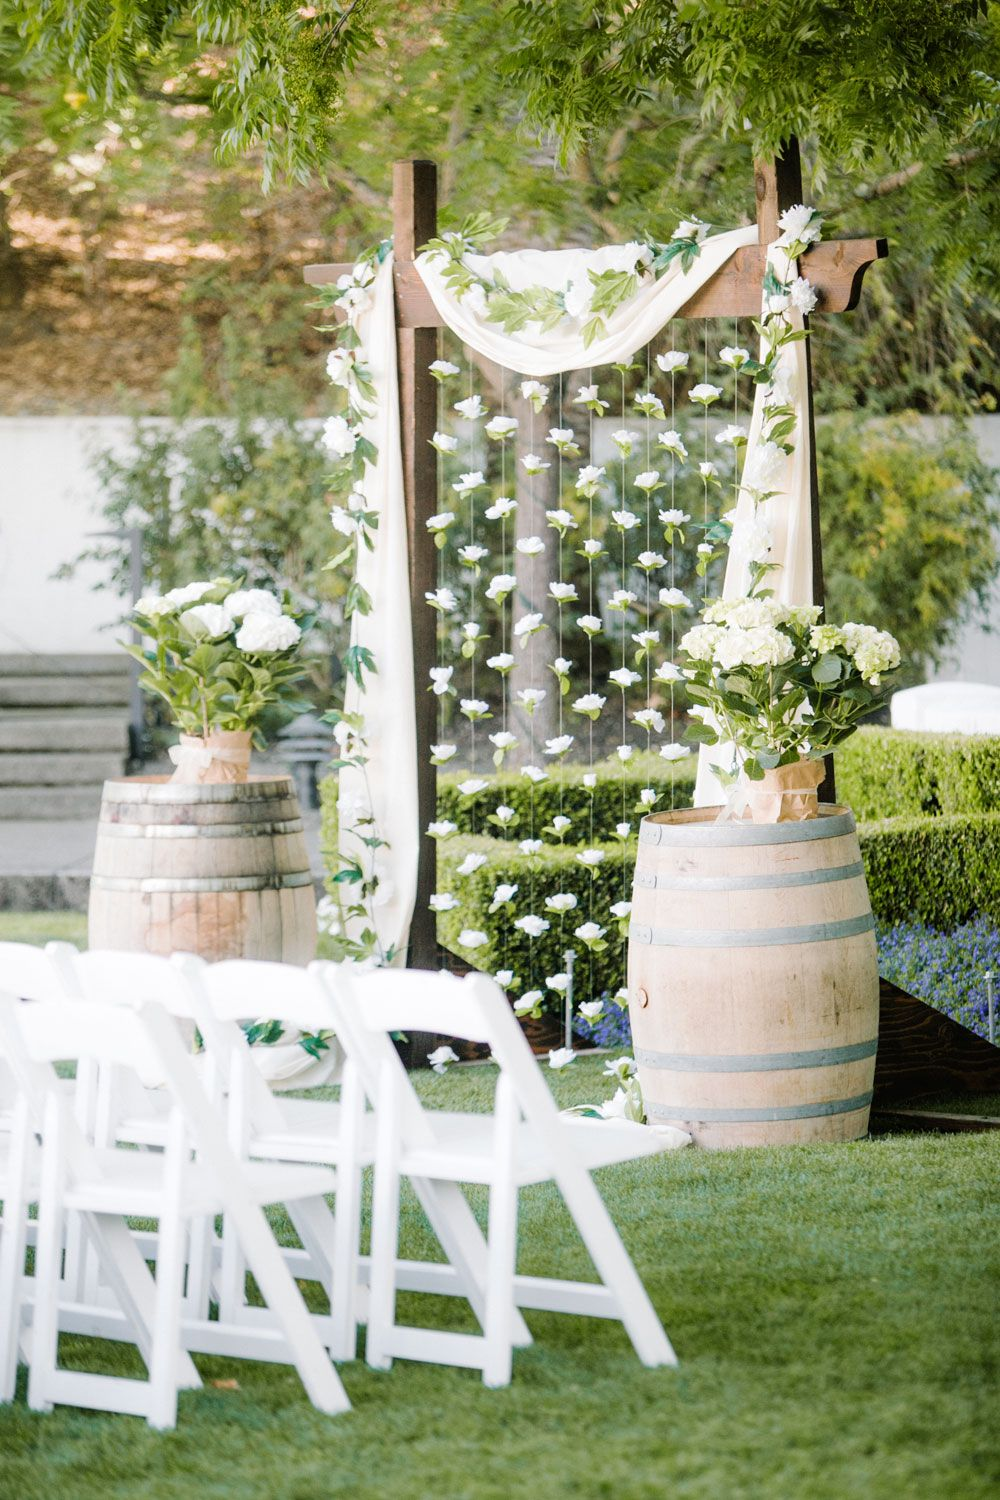 cute ceremony set up with handmade paper cranes at the alter